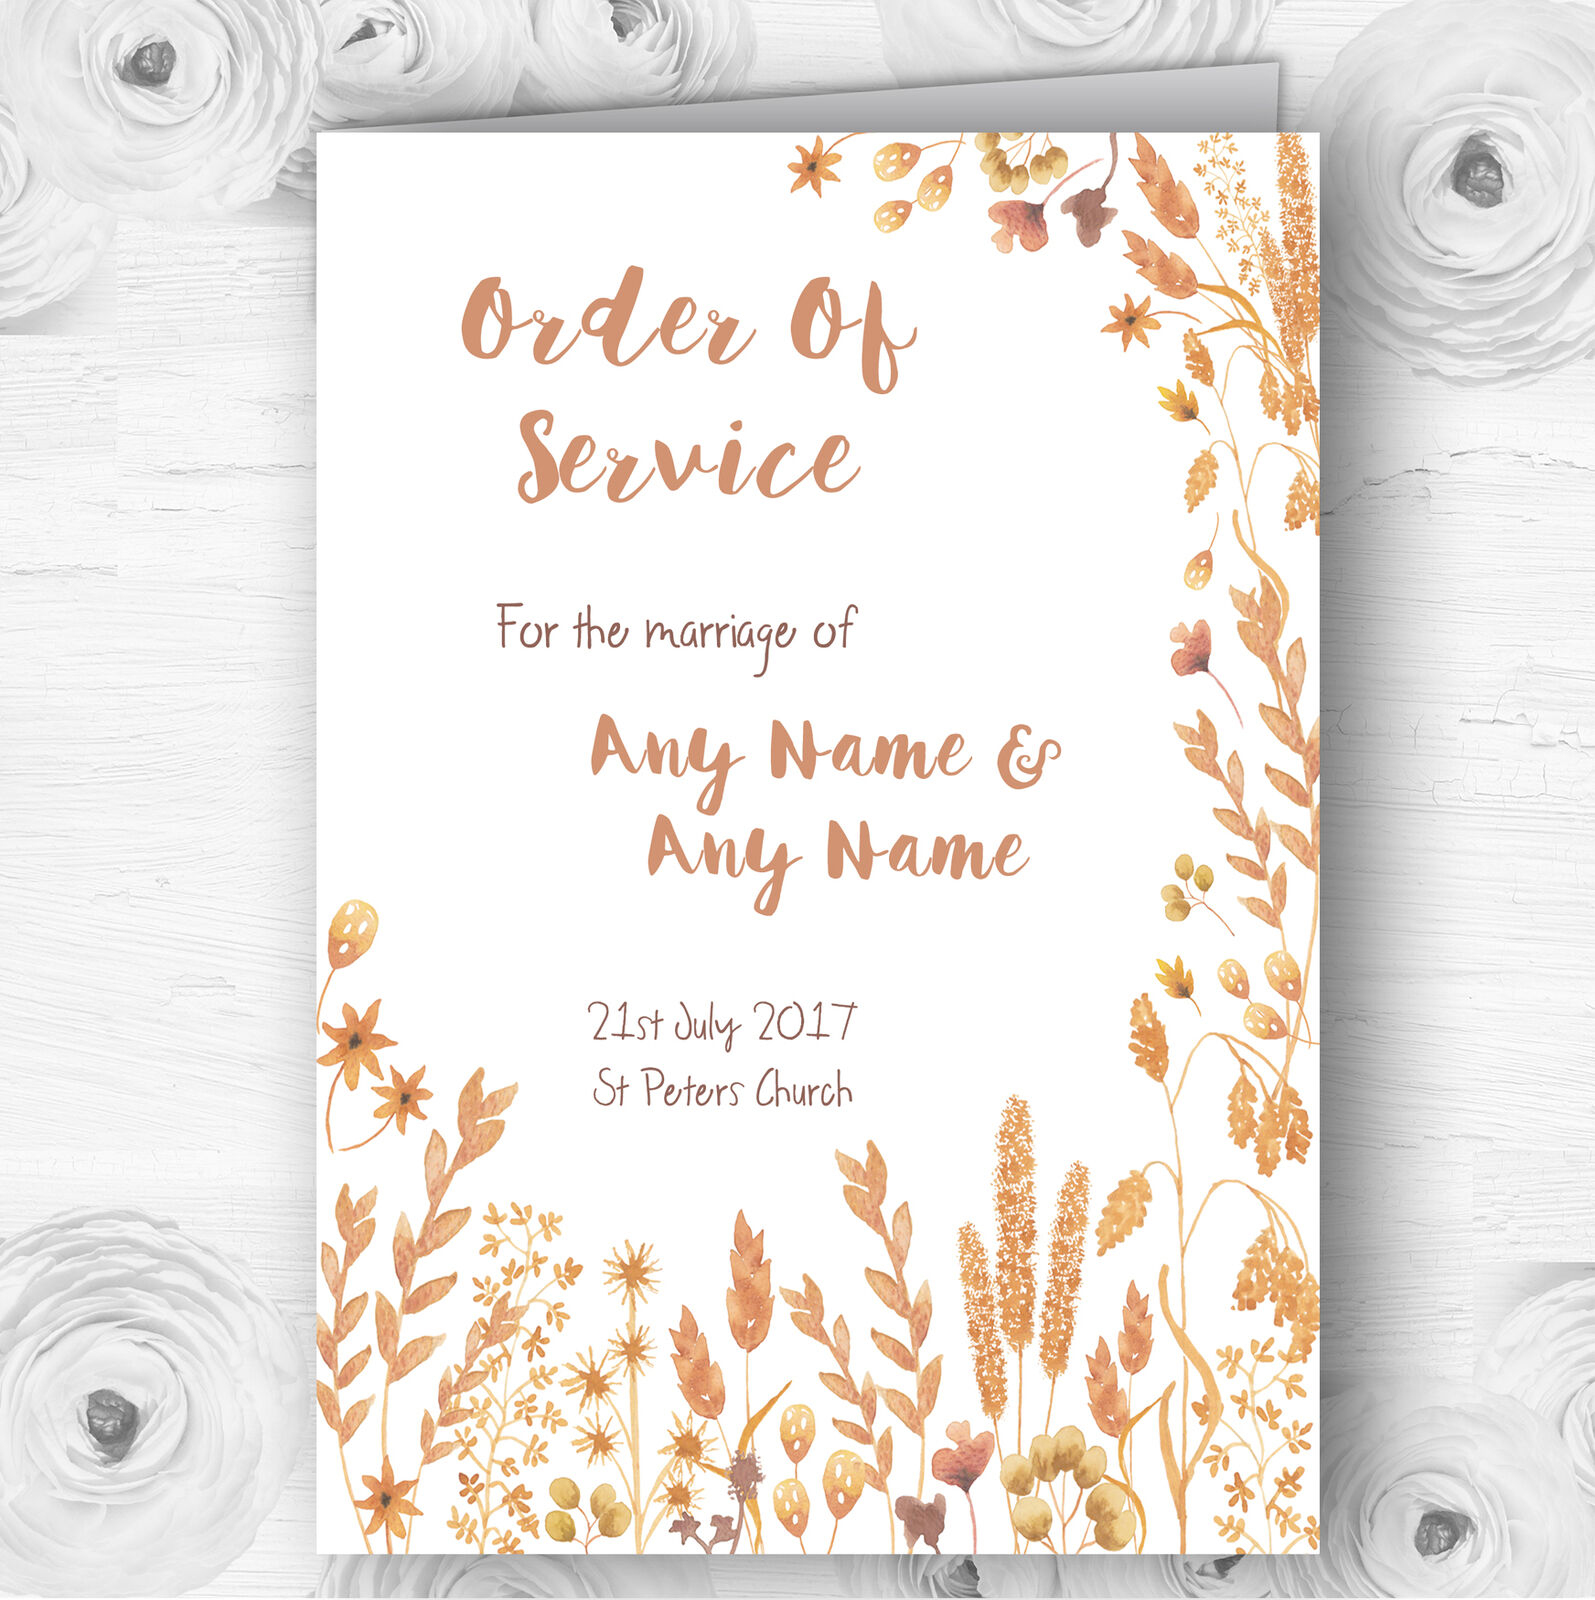 Golden Autumn Leaves Watercolour Wedding Double Sided Cover Order Of Service